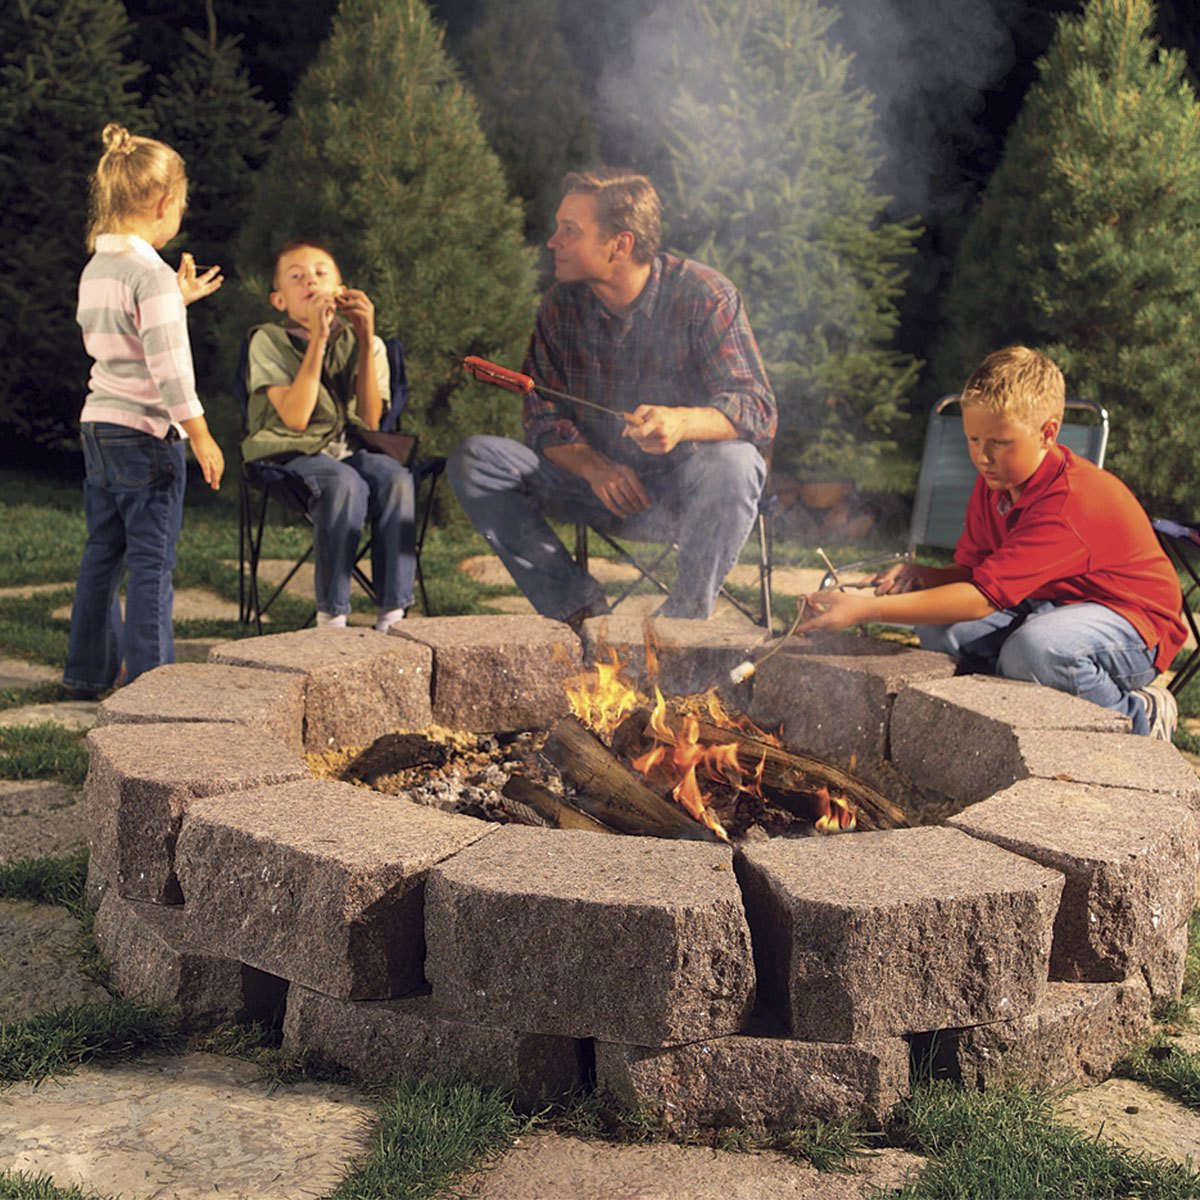 12 Great Backyard Fire Pit Ideas The Family Handyman with 11 Genius Initiatives of How to Improve Fire Pit Backyard Ideas